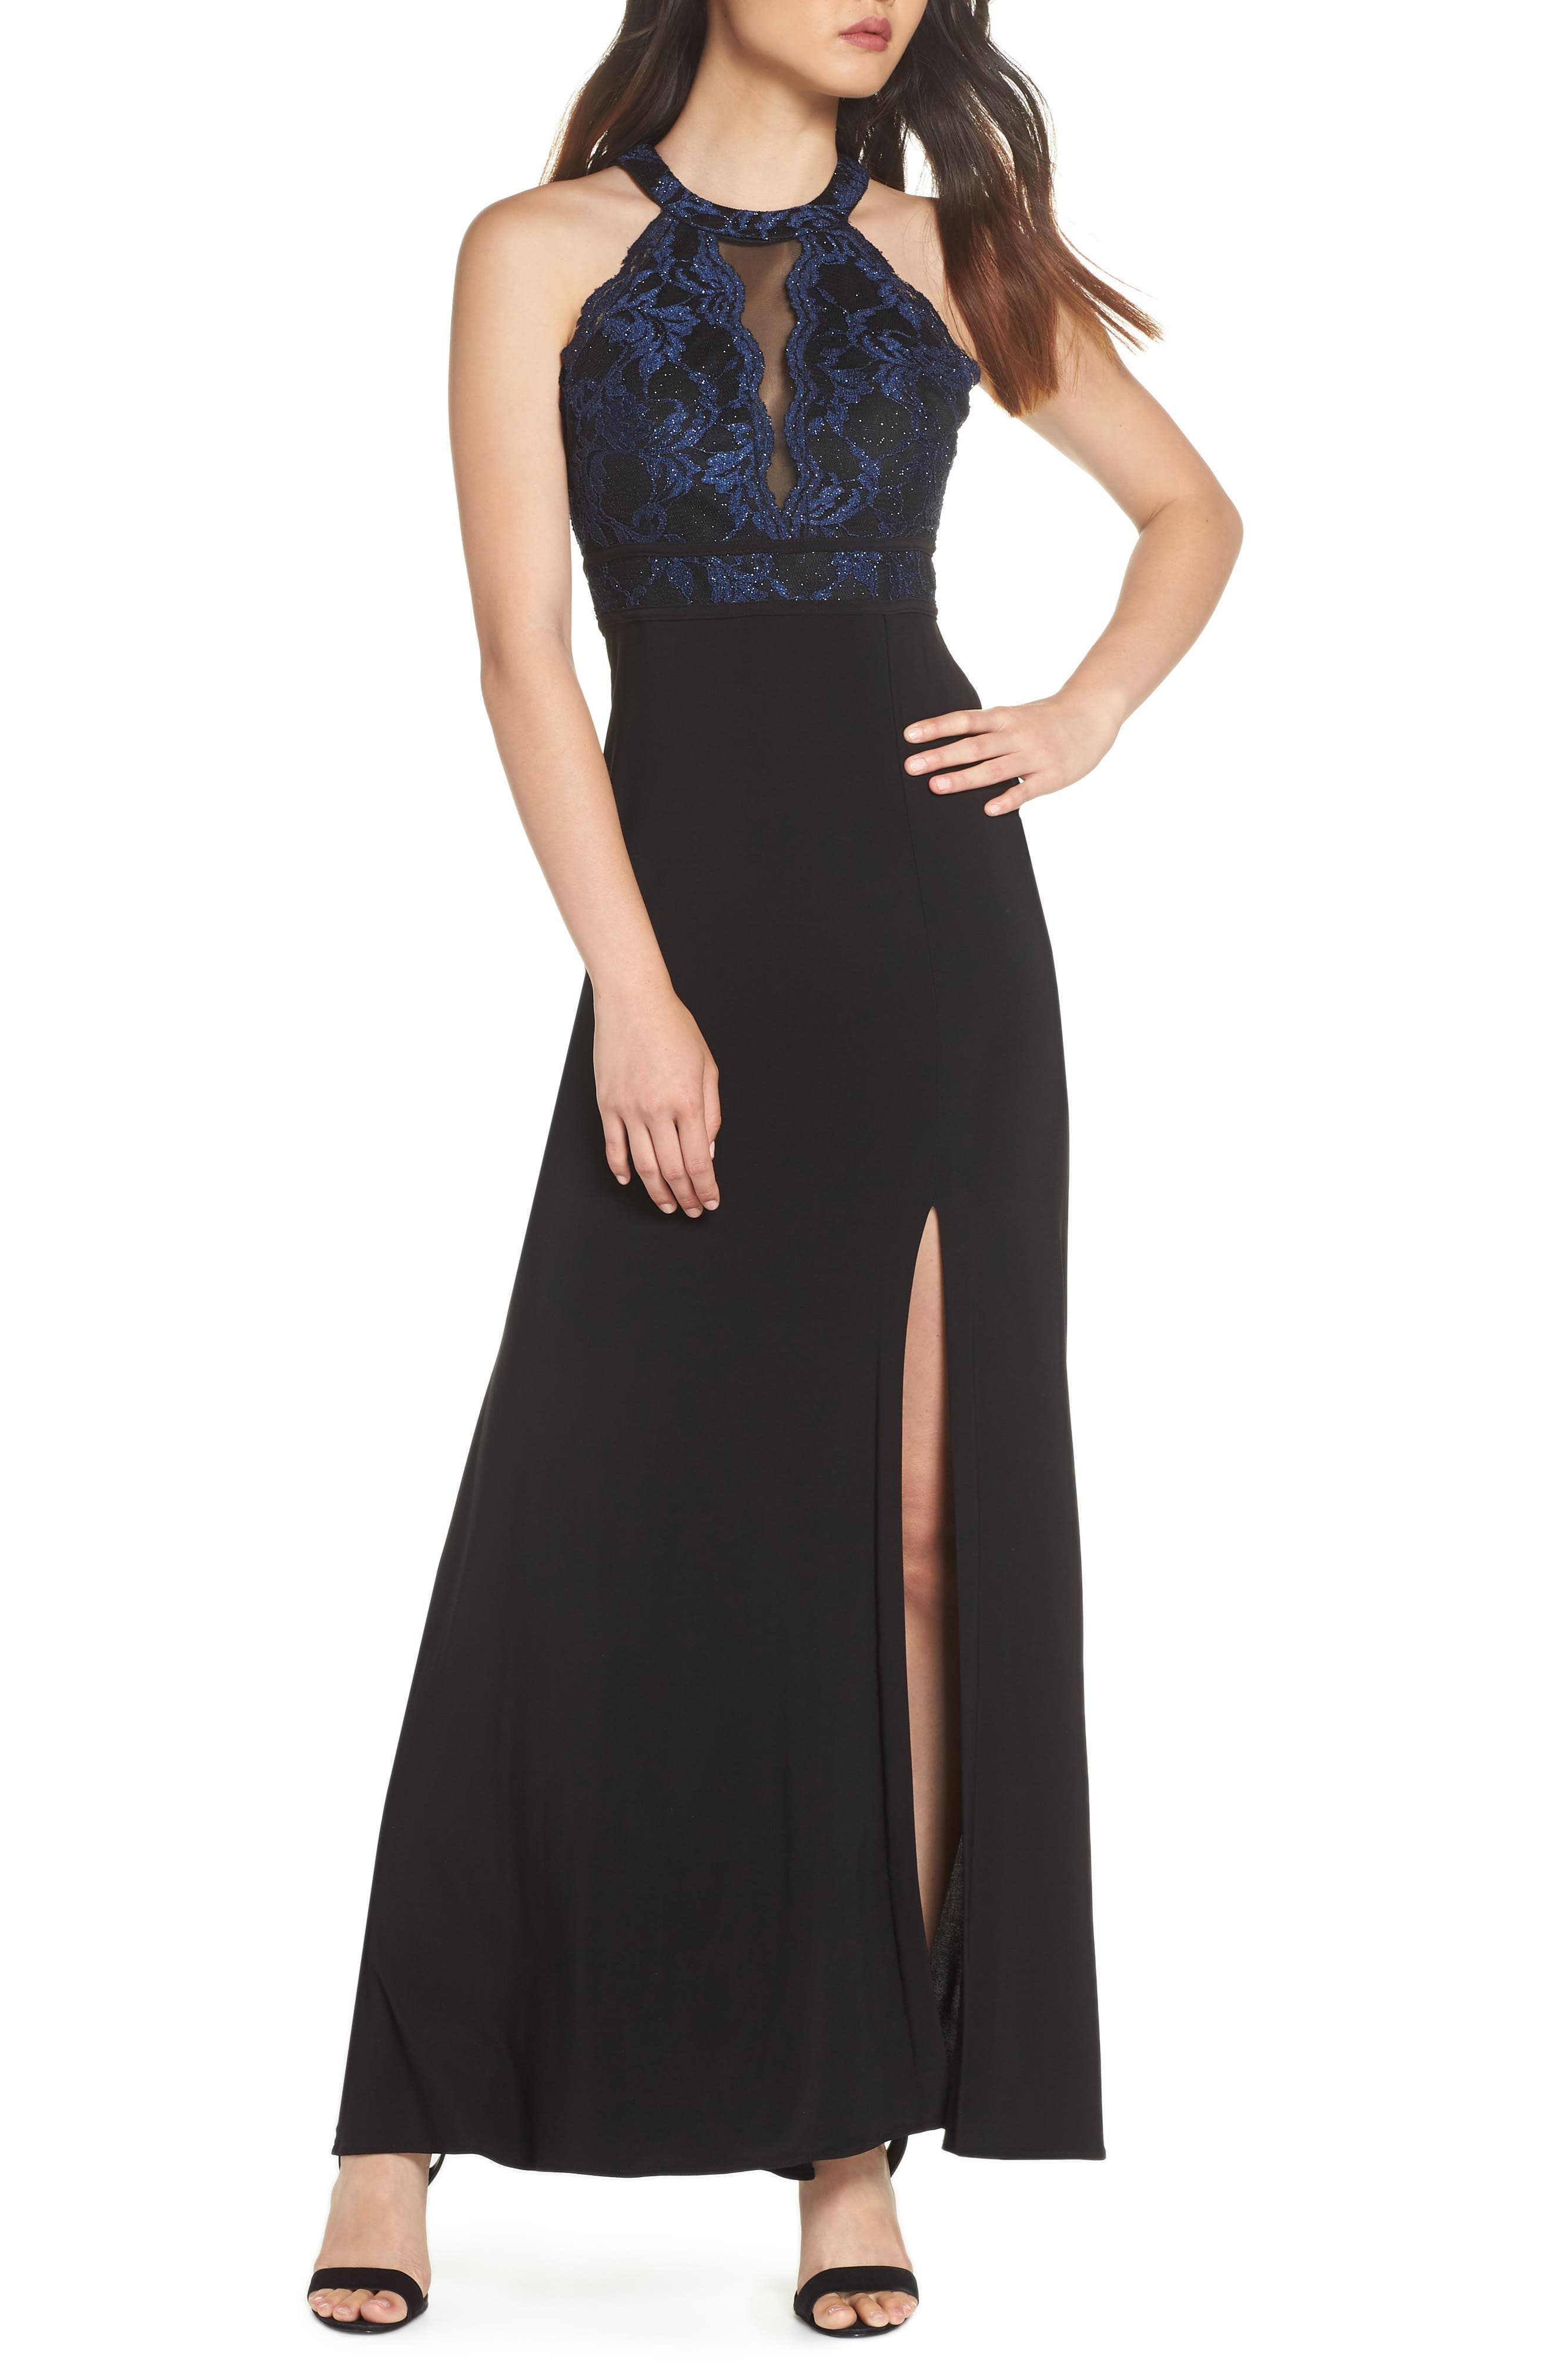 Morgan & Co. Lace Bodice Knit Gown, /4 - Black